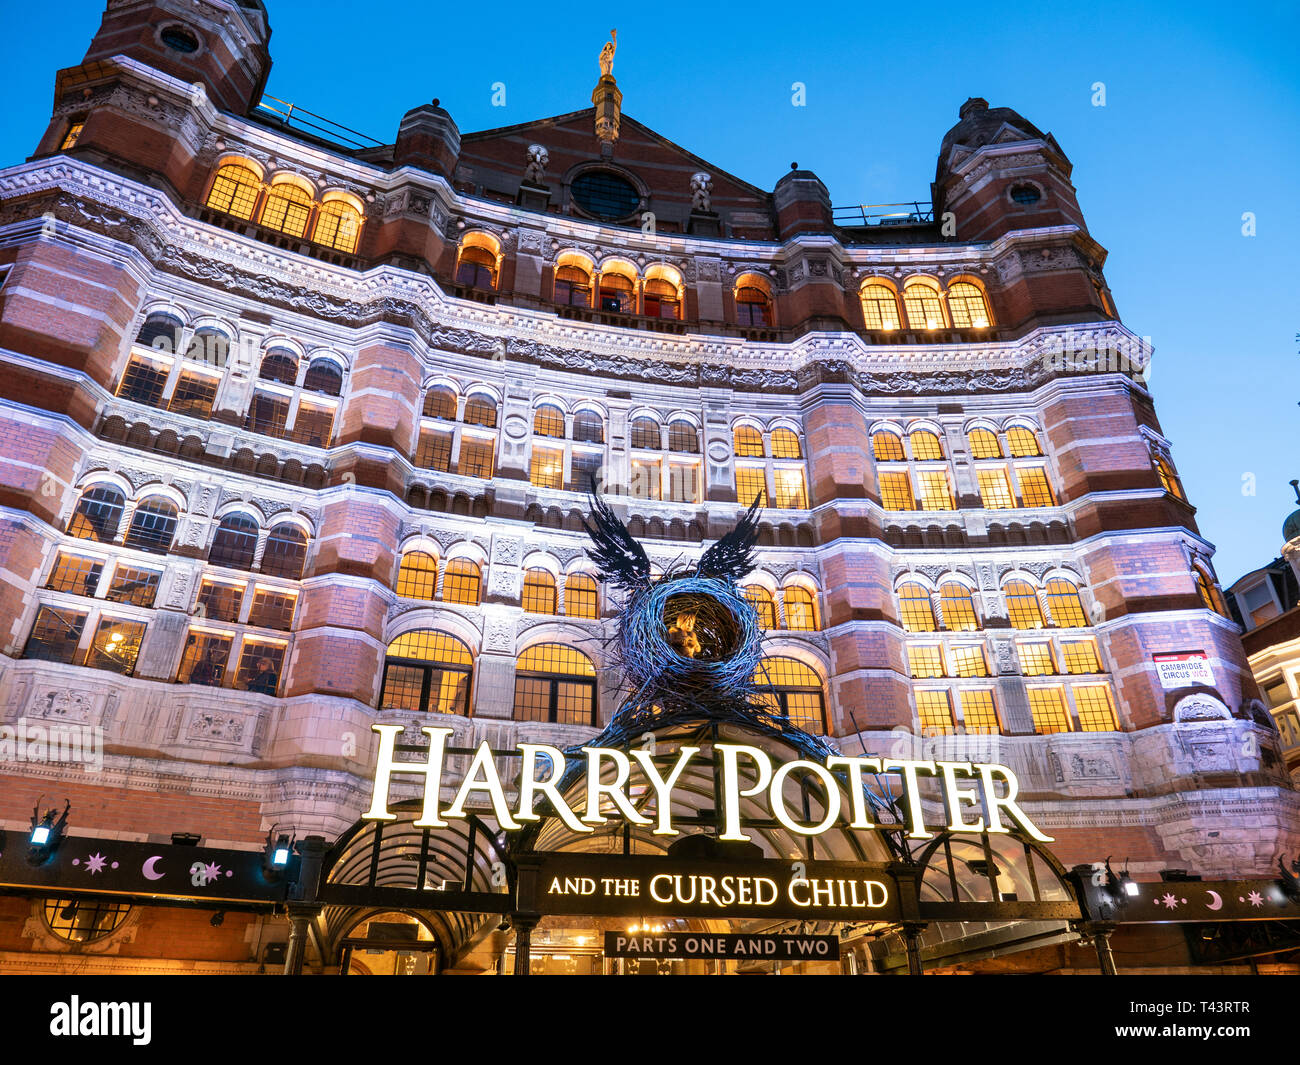 Harry Potter an the Cursed Child at the Palace Theatre, Shaftesbury Avenue, London, UK Stock Photo